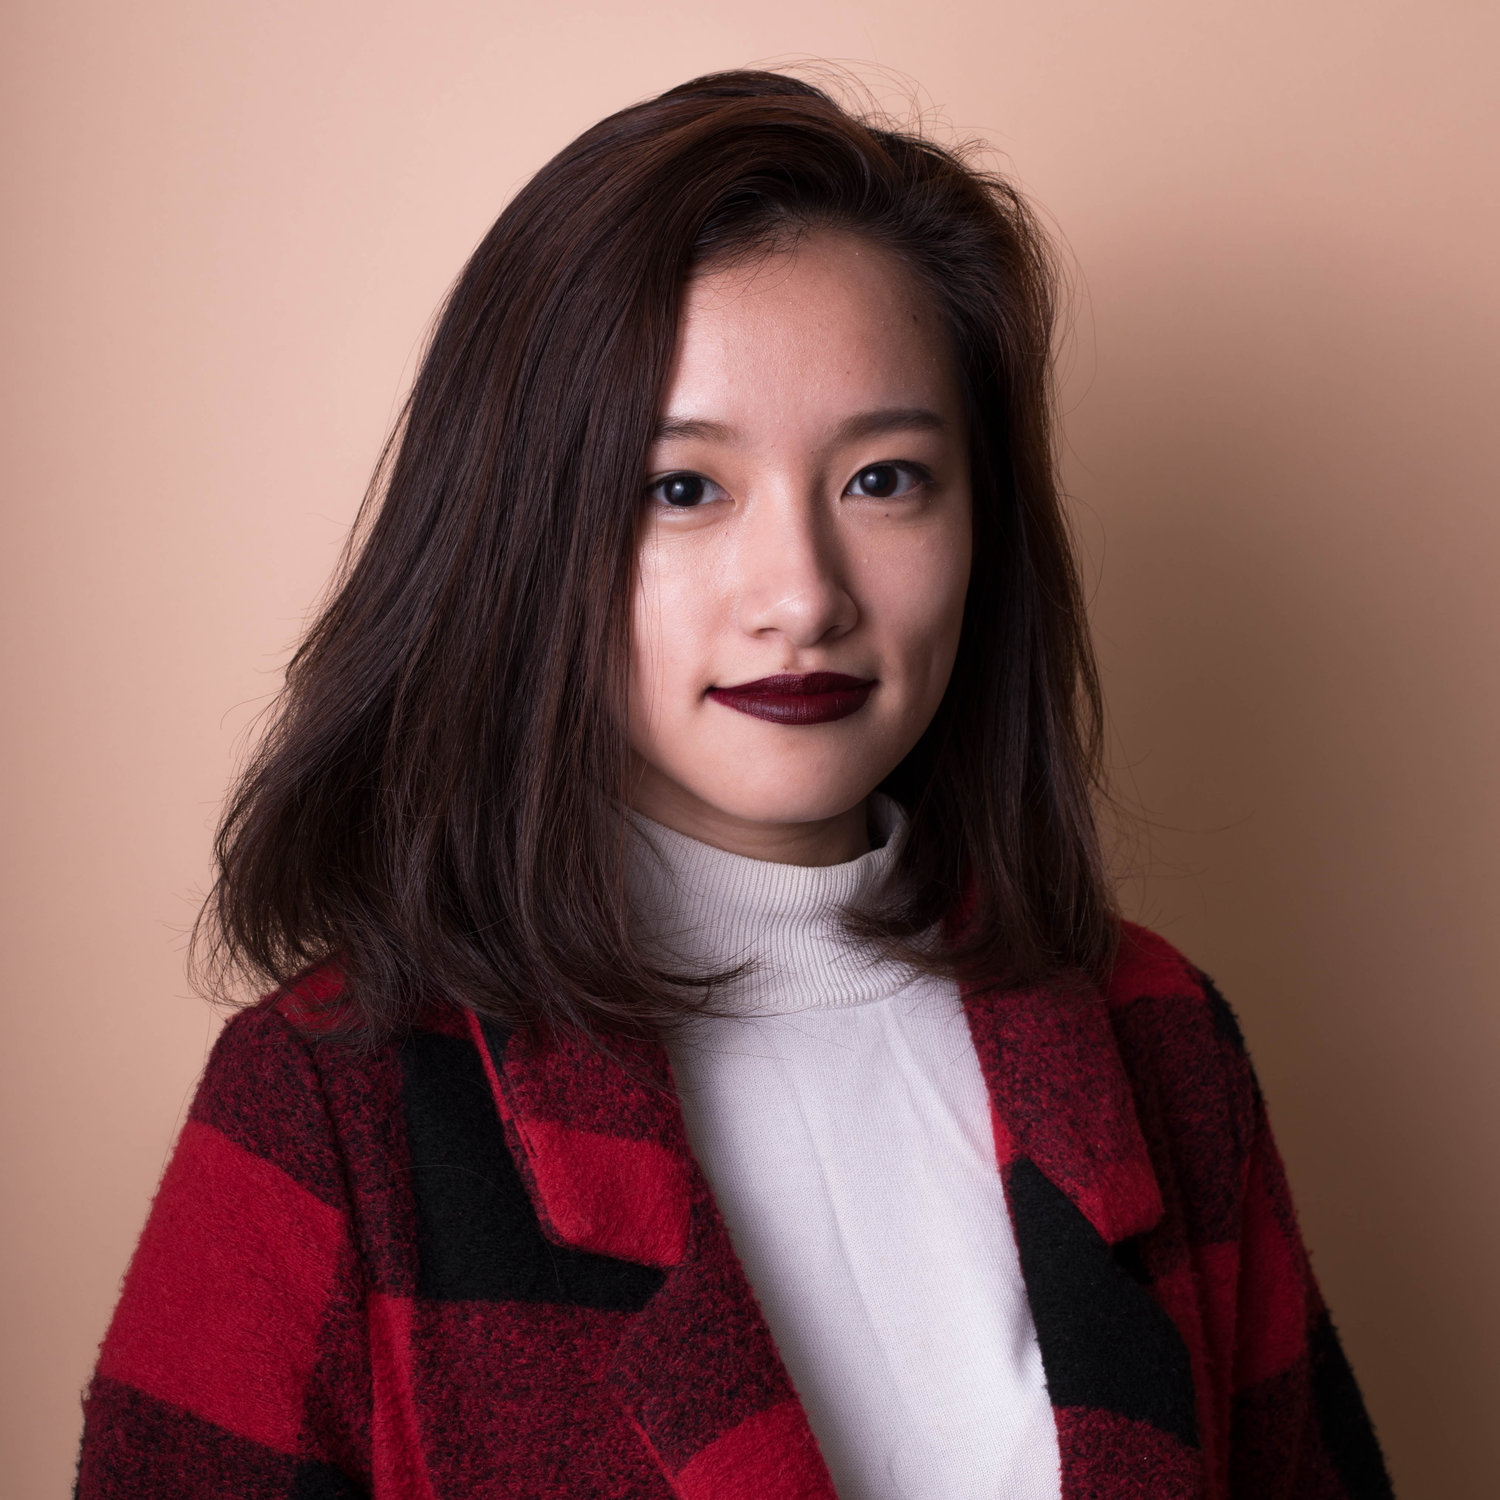 Lillian Zhao   A native Marylander, Lillian is an art director and designer. She was a fellow for the 4A's Multicultural Advertising Internship Program as well as a mentee of Women Who Create before she joined the team. Lillian loves all things creative—from bullet journalling to photography—astrology, and binge-watching YouTube videos. Her passions lie in forming spaces where marginalized voices can be heard and people, celebrated.